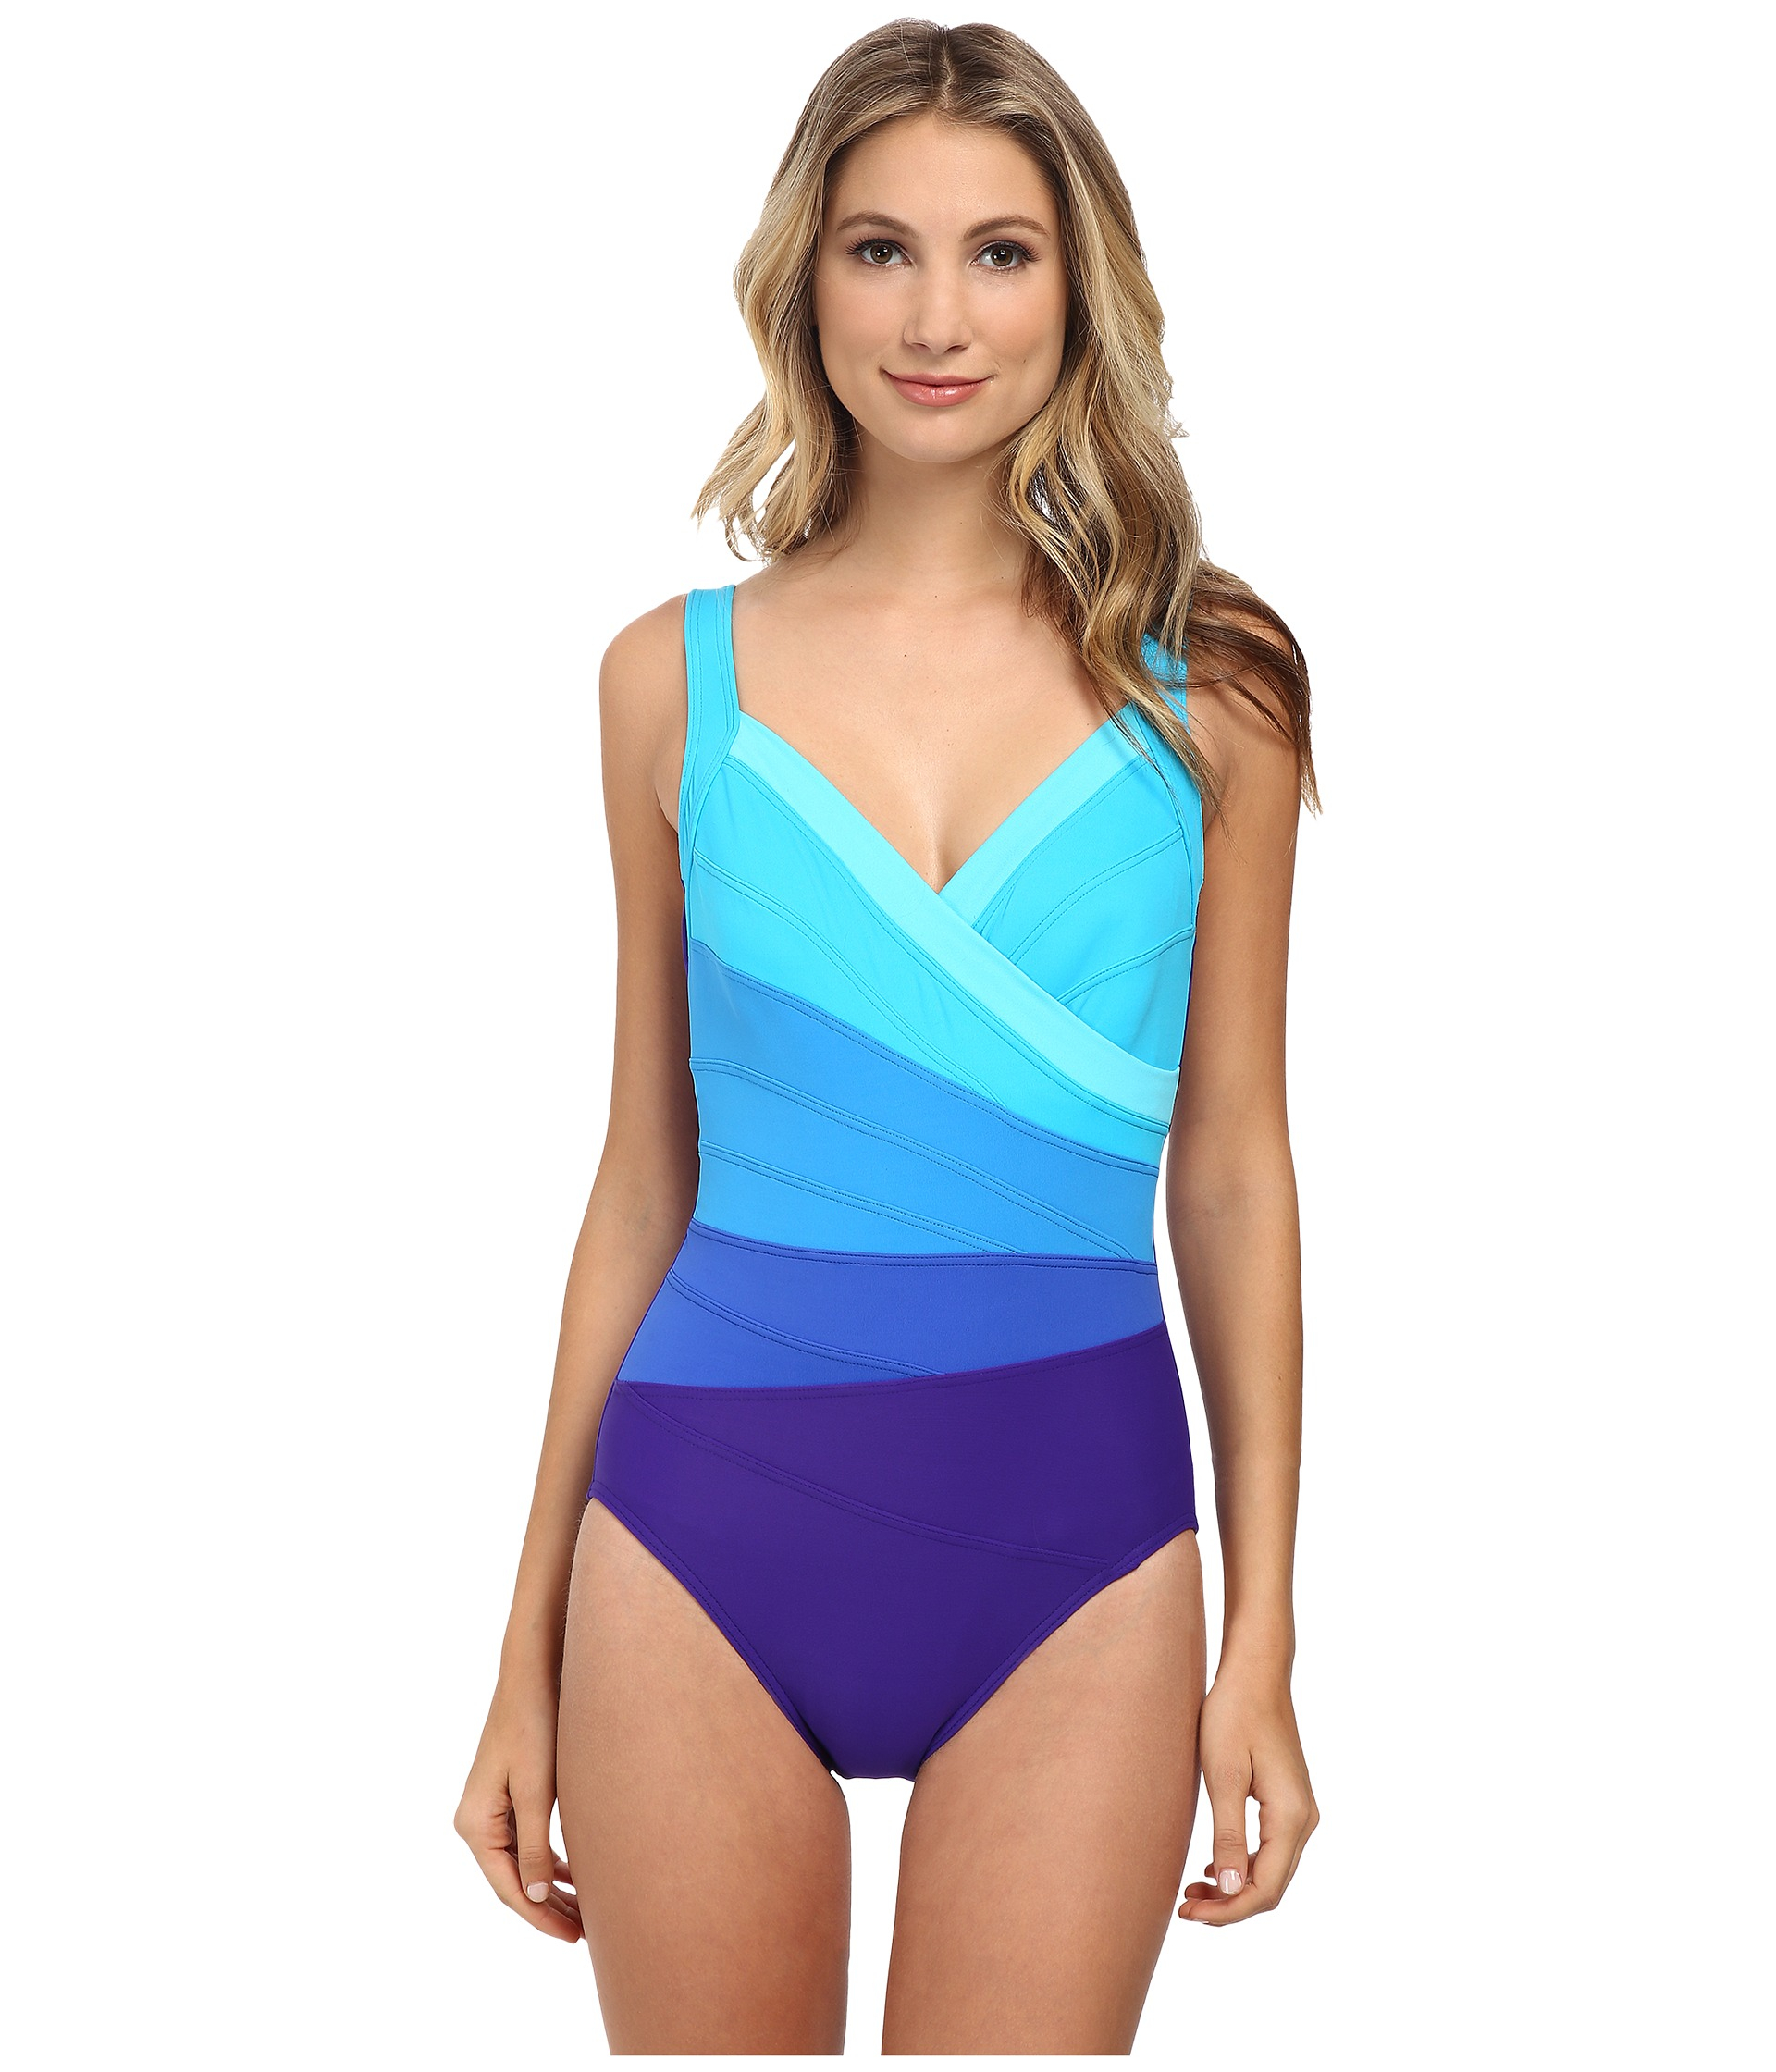 67e2d4fa157 Miraclesuit Spectra Band-it Surplice Swimsuit in Blue - Lyst